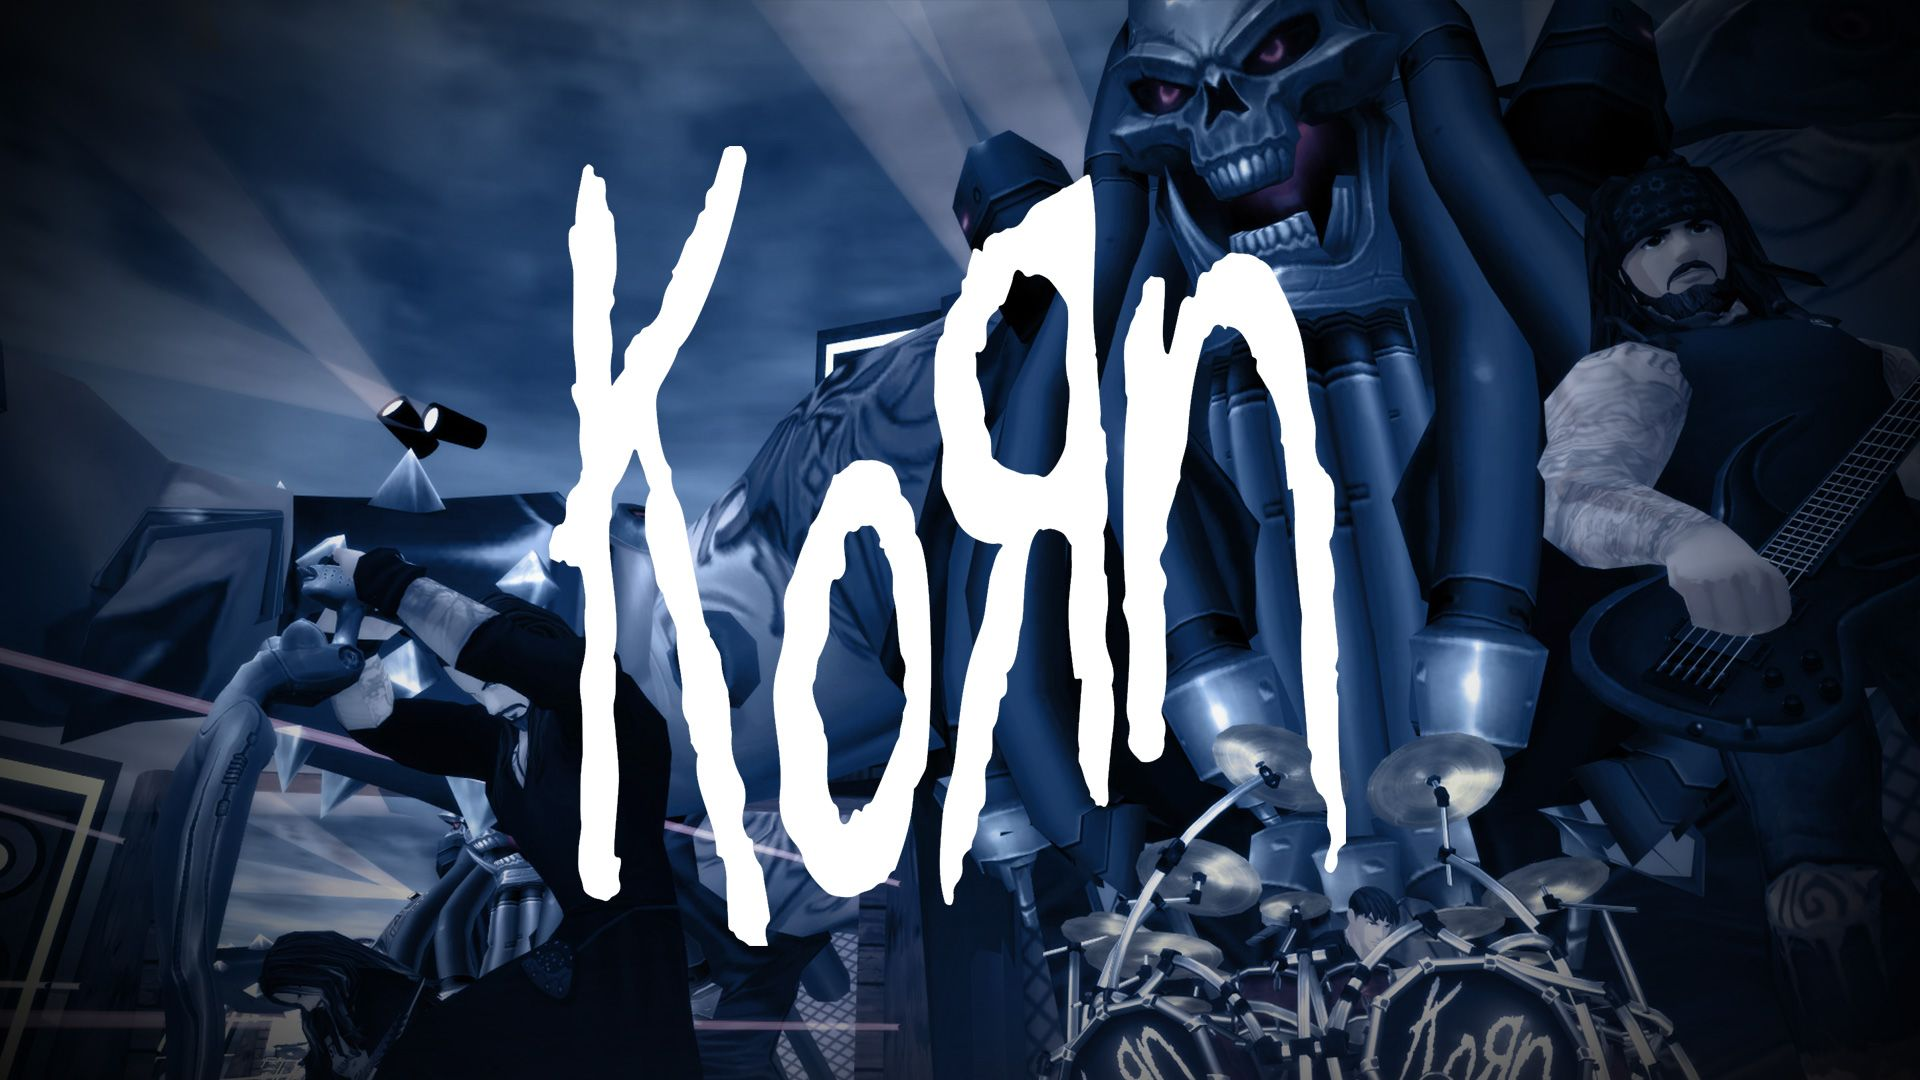 Korn as video game characters